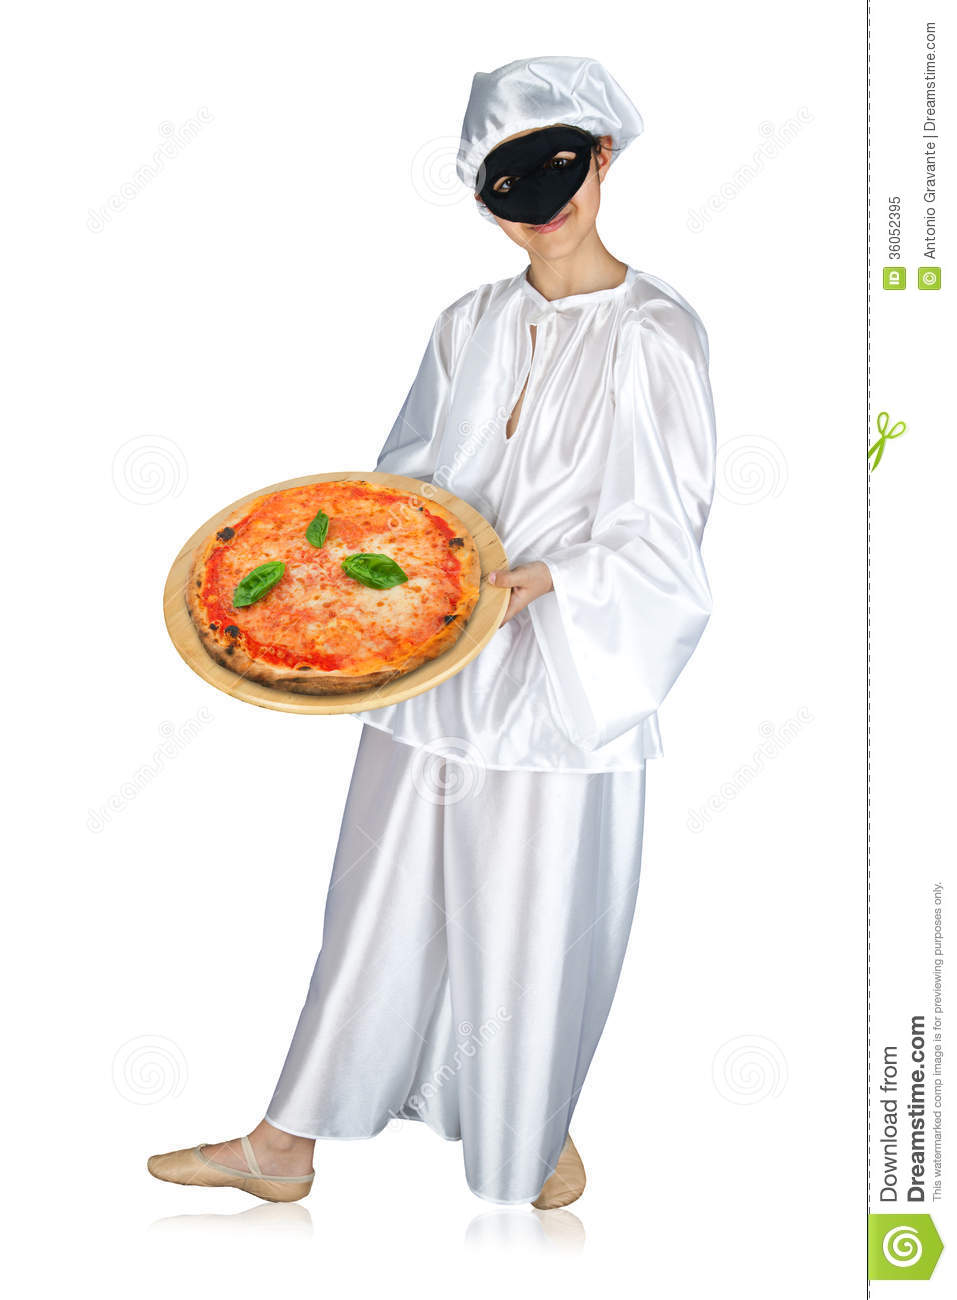 Pulcinella And Pizza Royalty Free Stock Photo - Image ...